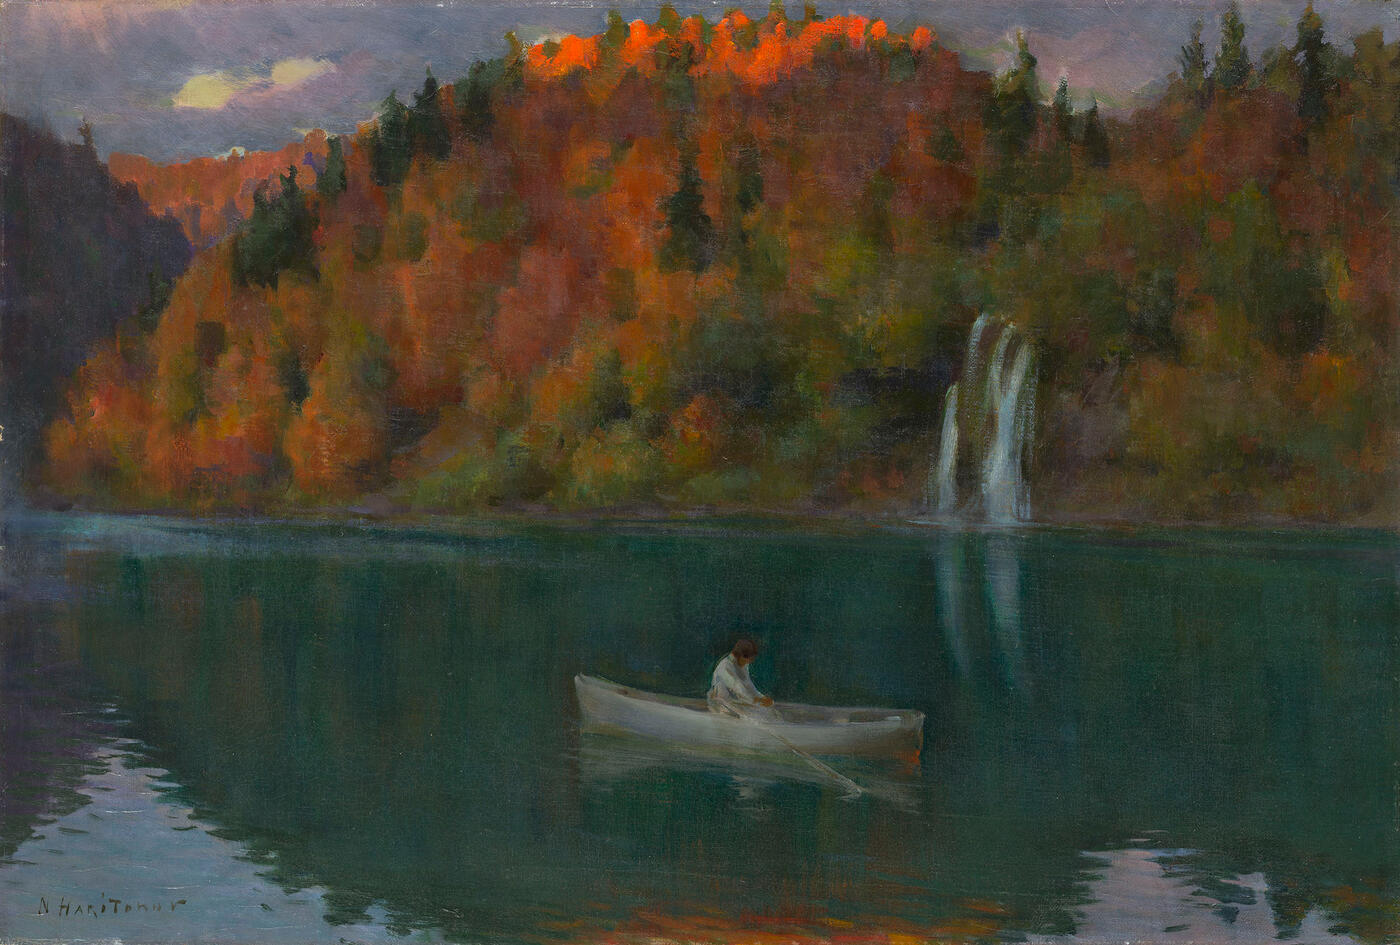 Boating on the Autumn Lake